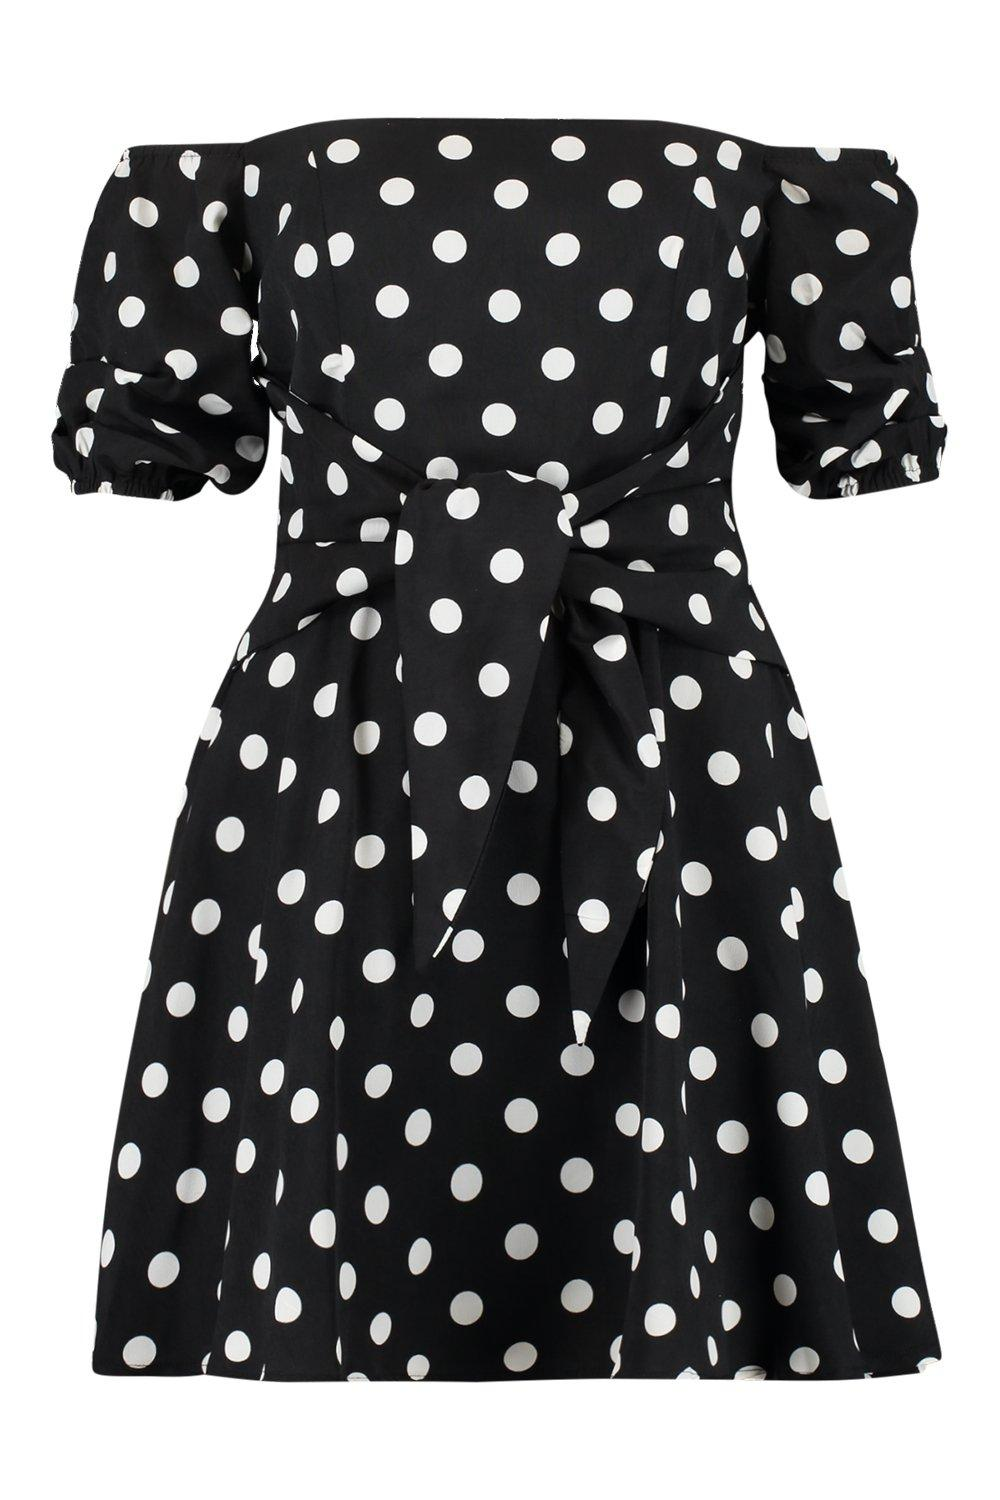 Dress Skater Dot Polka Sleeve Blouson HgwFPO